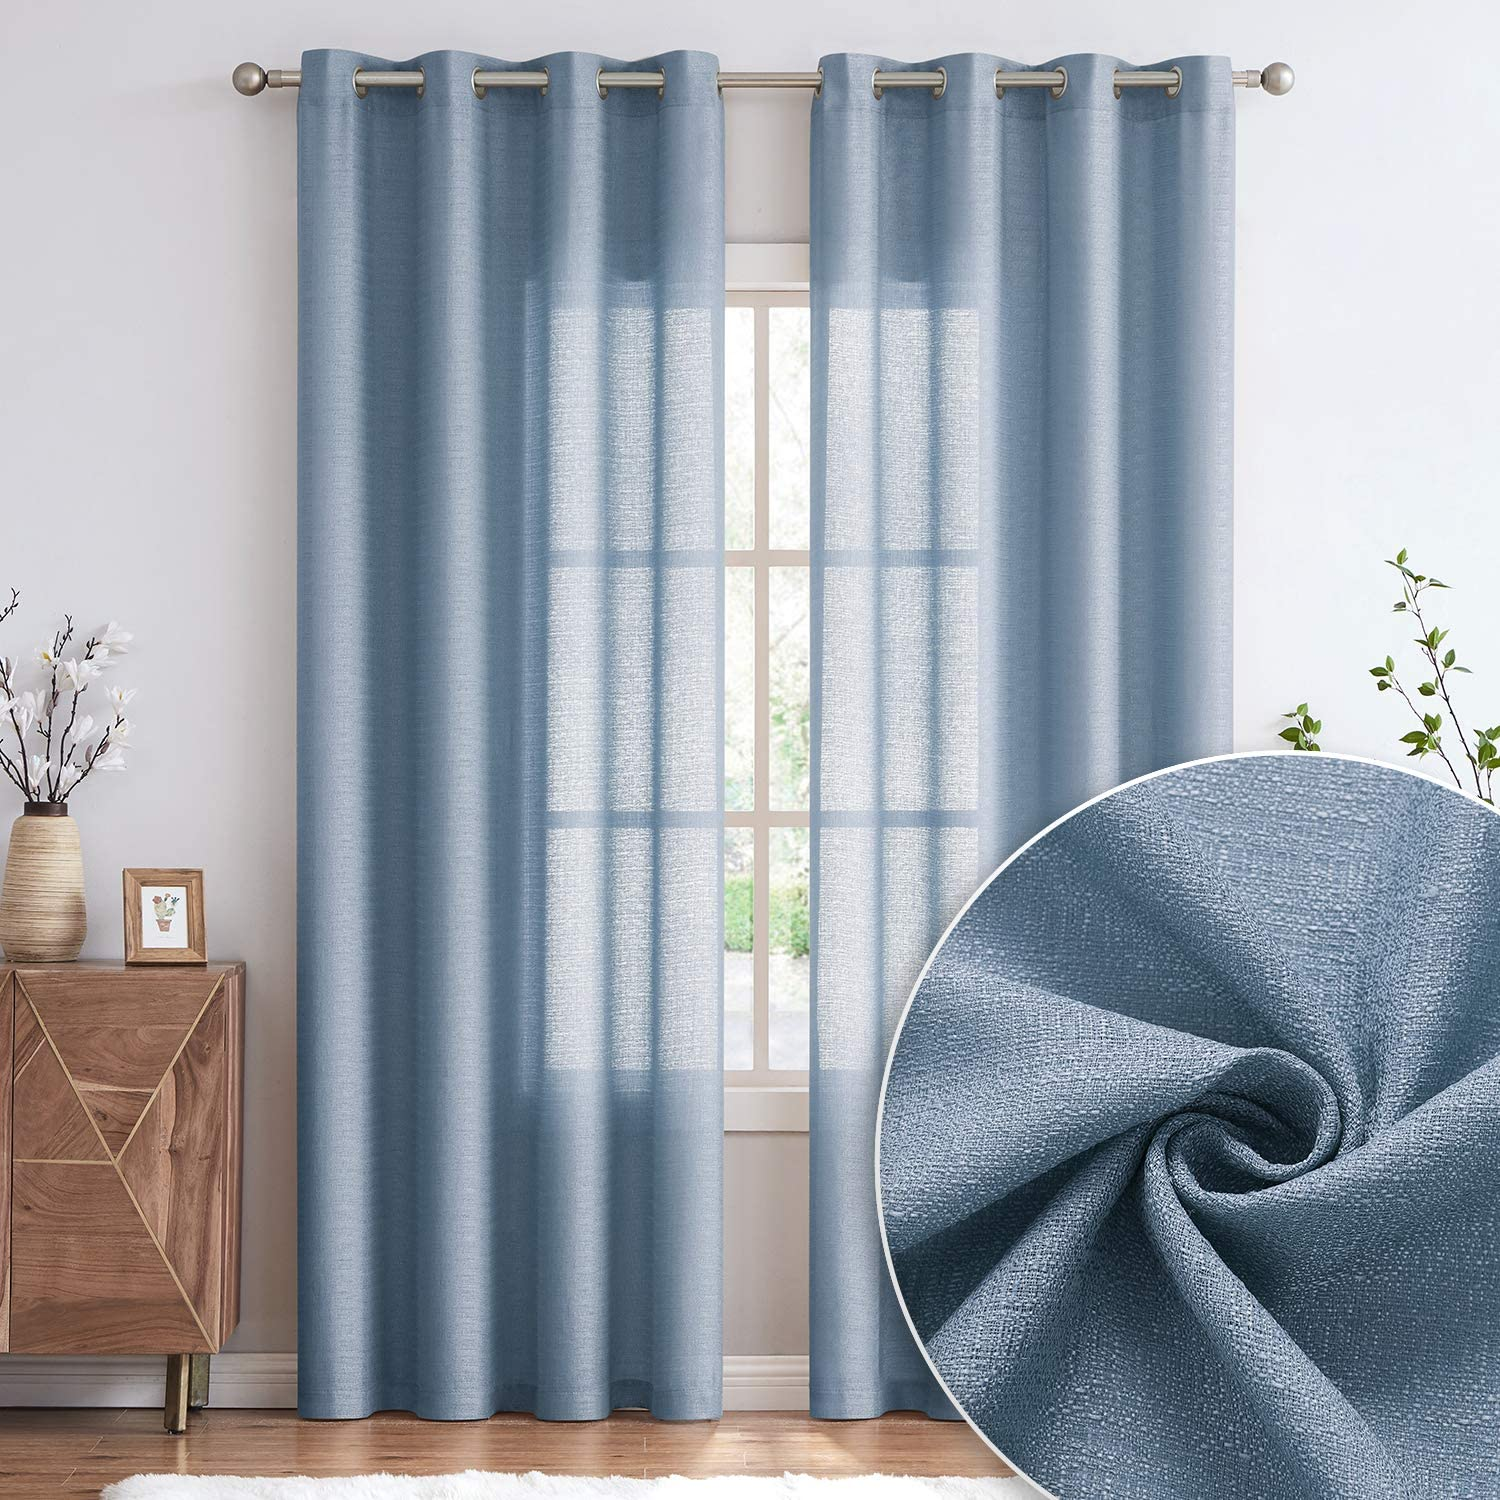 Linen Textured Sheer Curtains for Light Bedroom Cheap mail order Max 44% OFF specialty store Filtering Semi